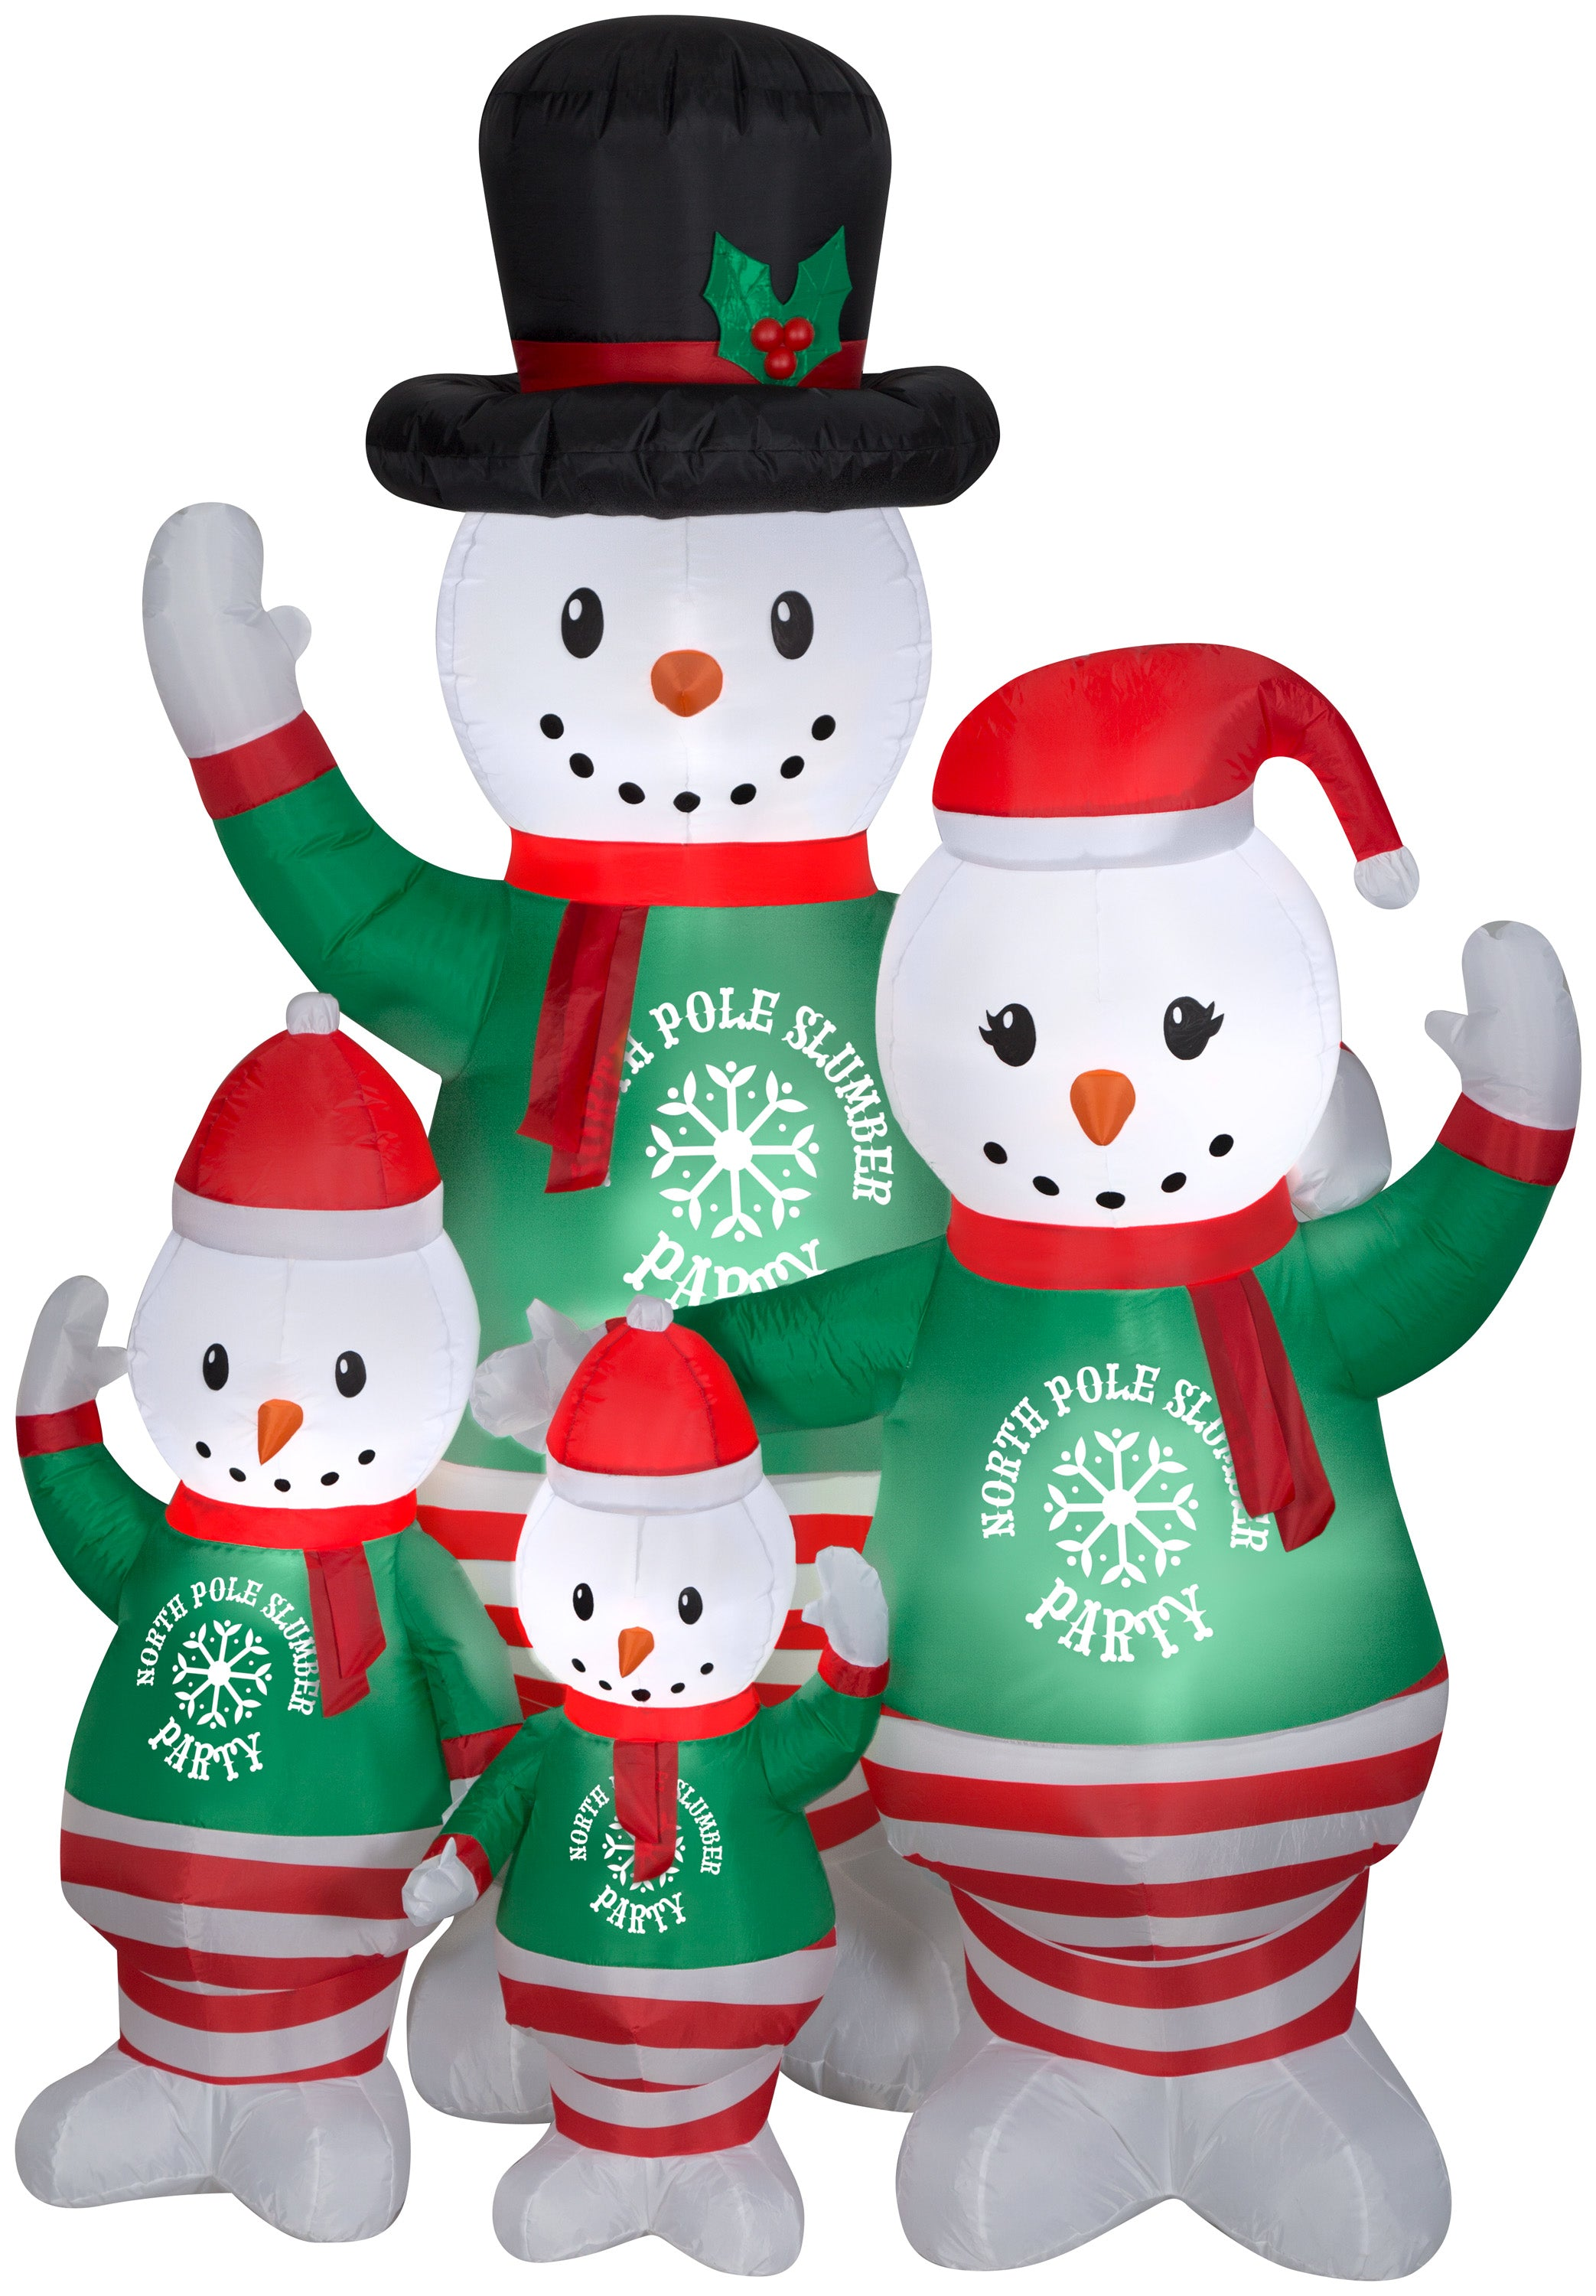 Gemmy Christmas Airblown Inflatable Pajama Snowman Family Scene, 7 ft Tall, Multicolored